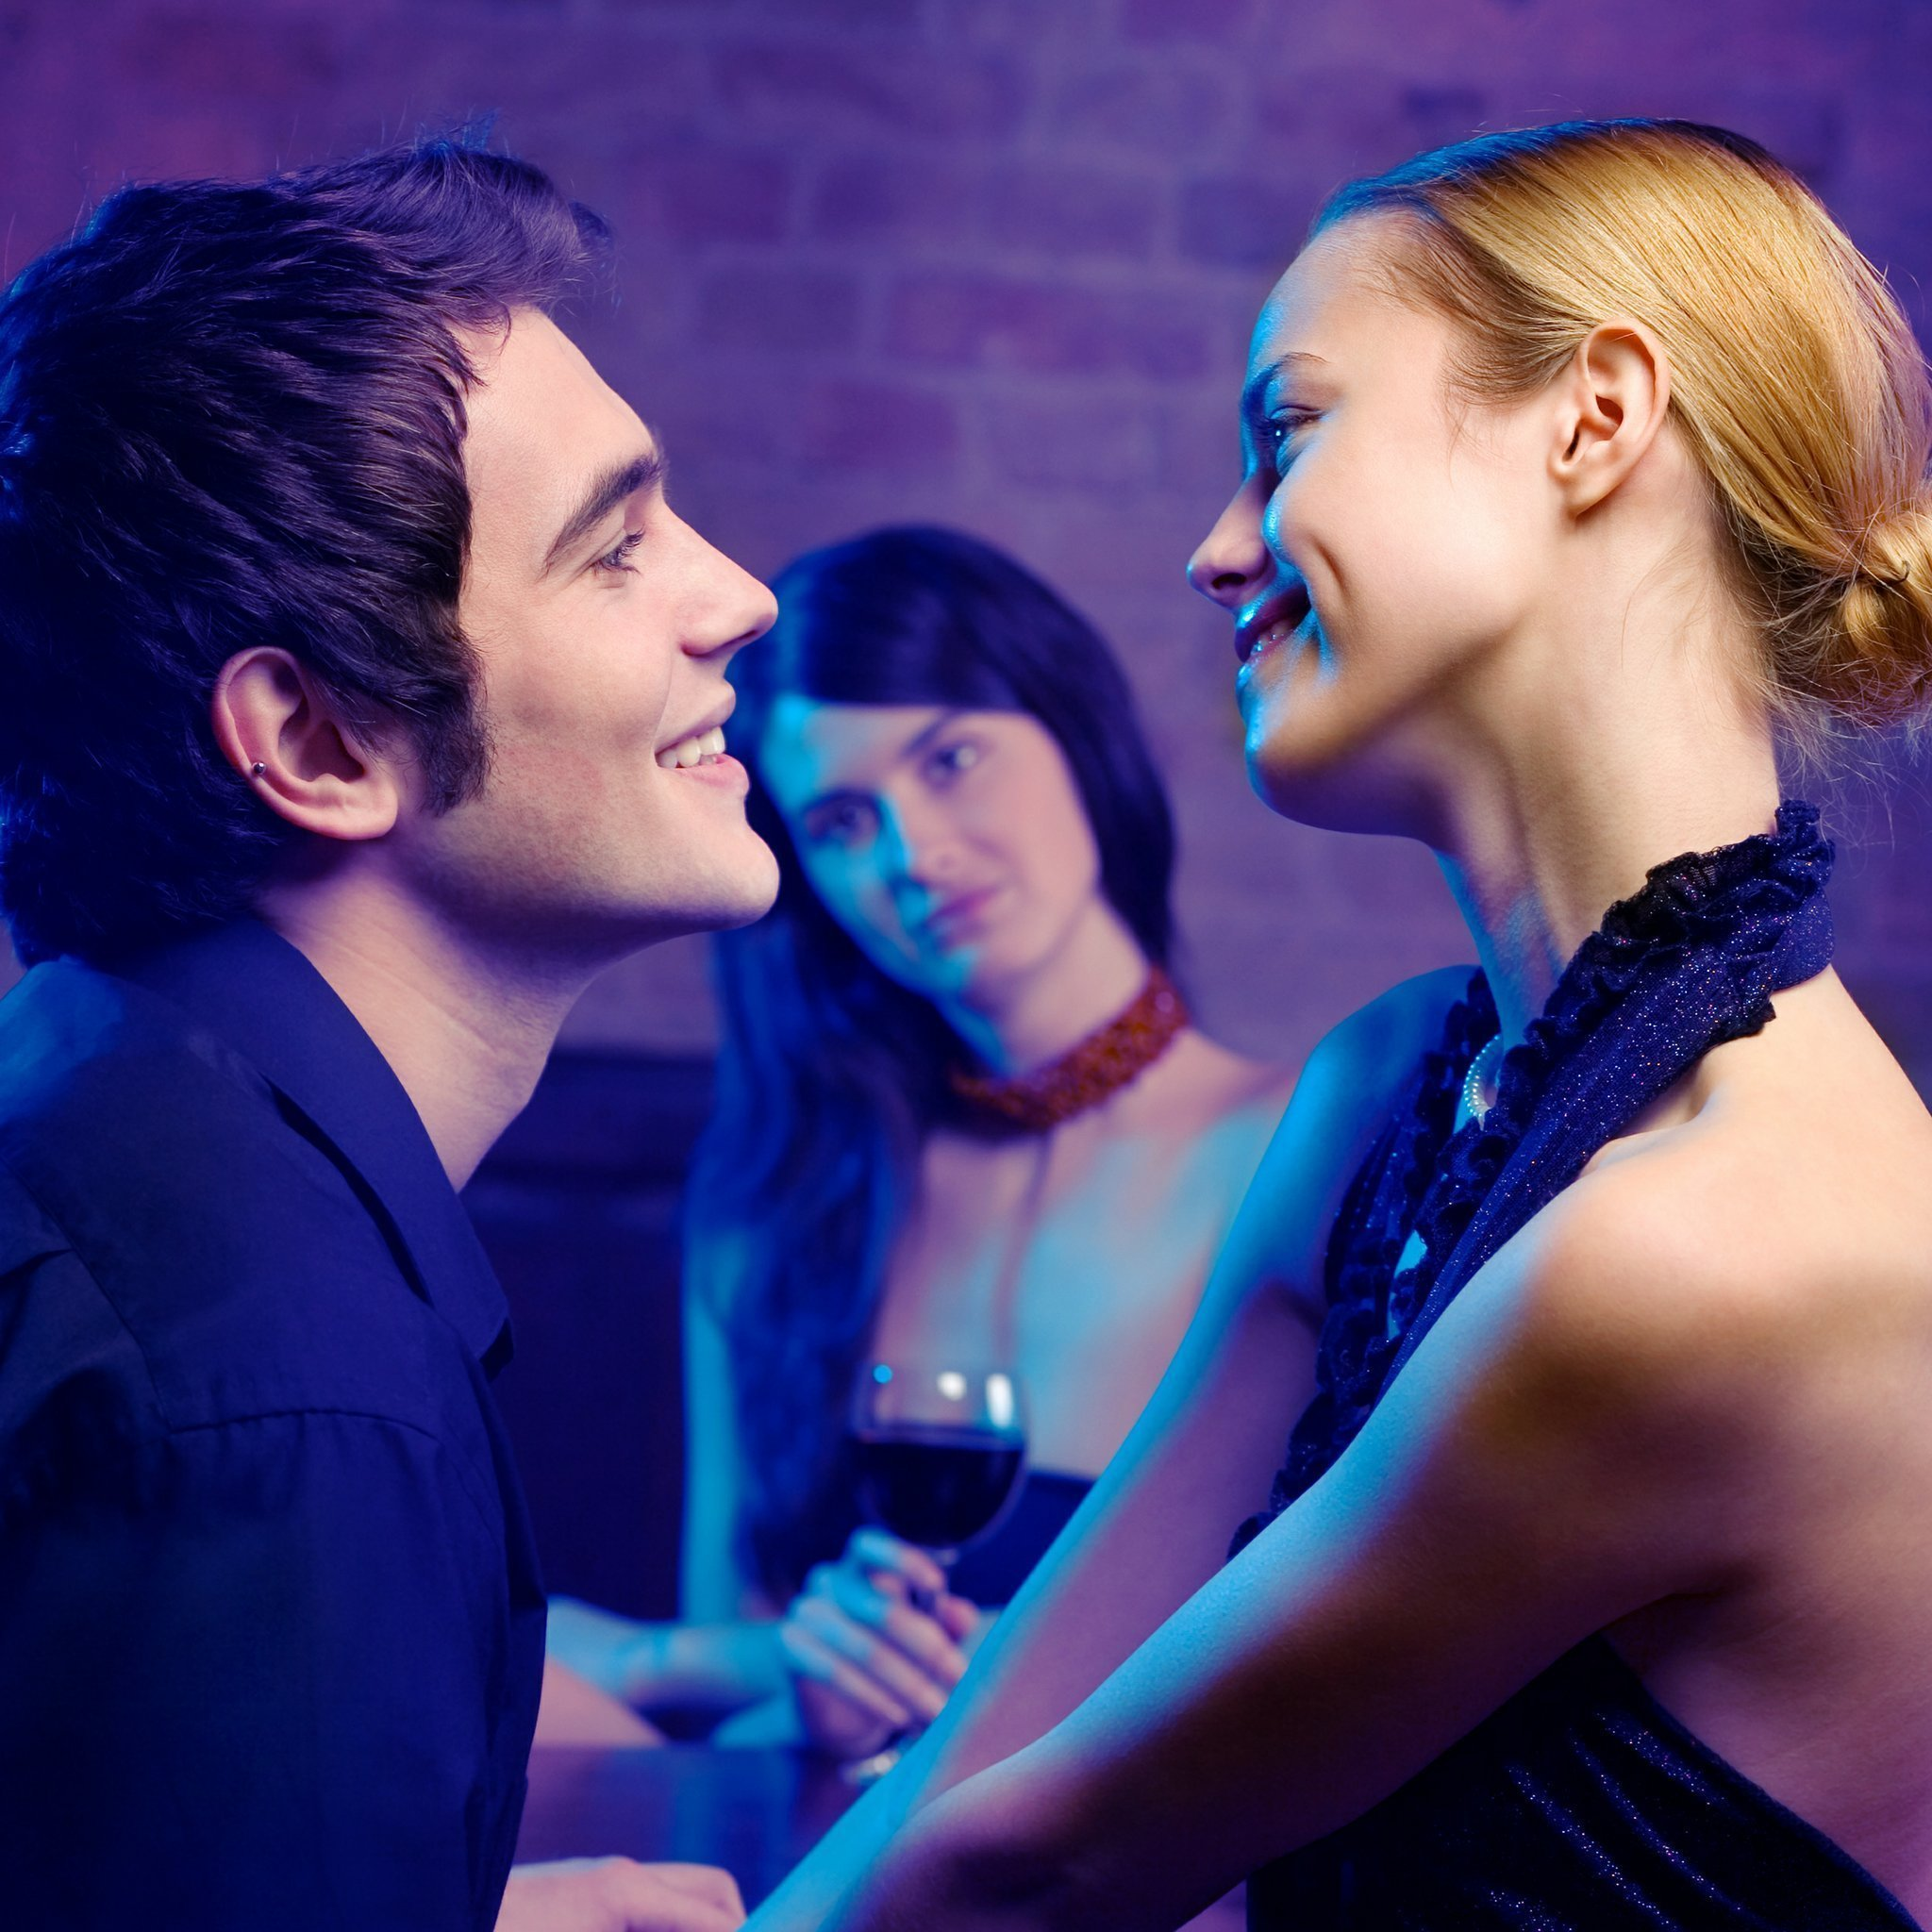 Dating myths about interacial dating